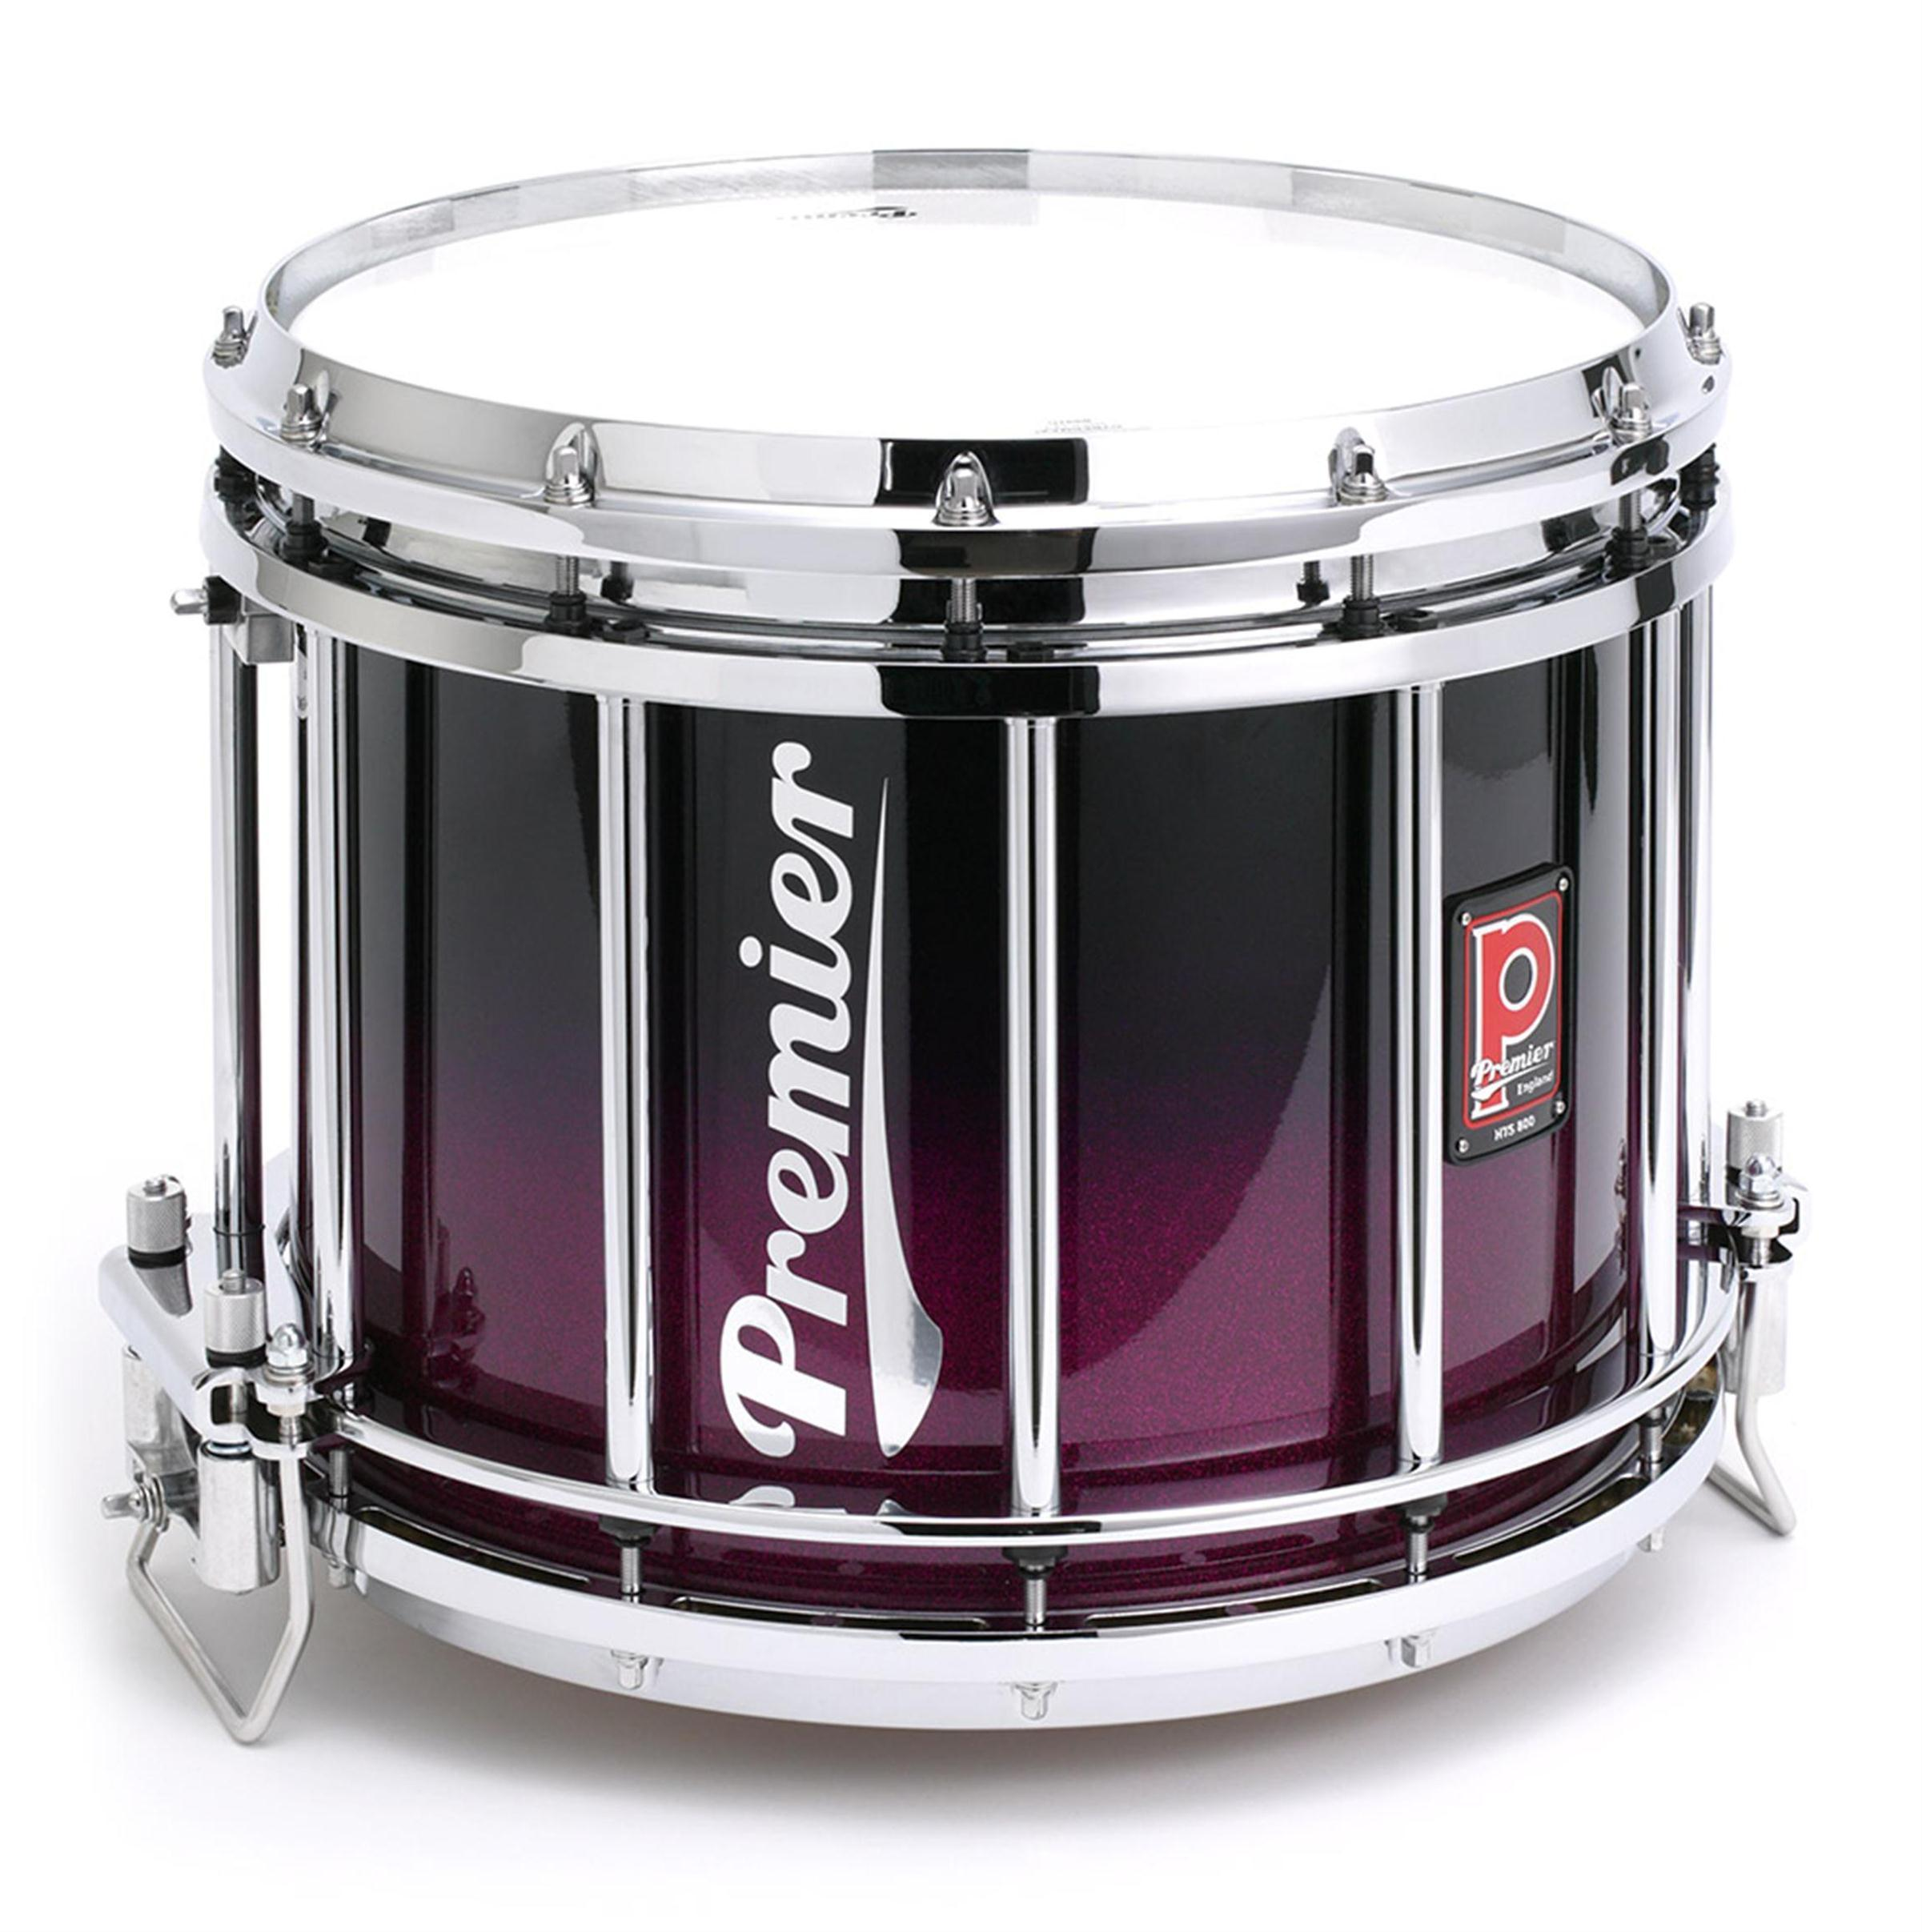 tuning a pipe band snare drum part 2 the pipe band drumming blog. Black Bedroom Furniture Sets. Home Design Ideas